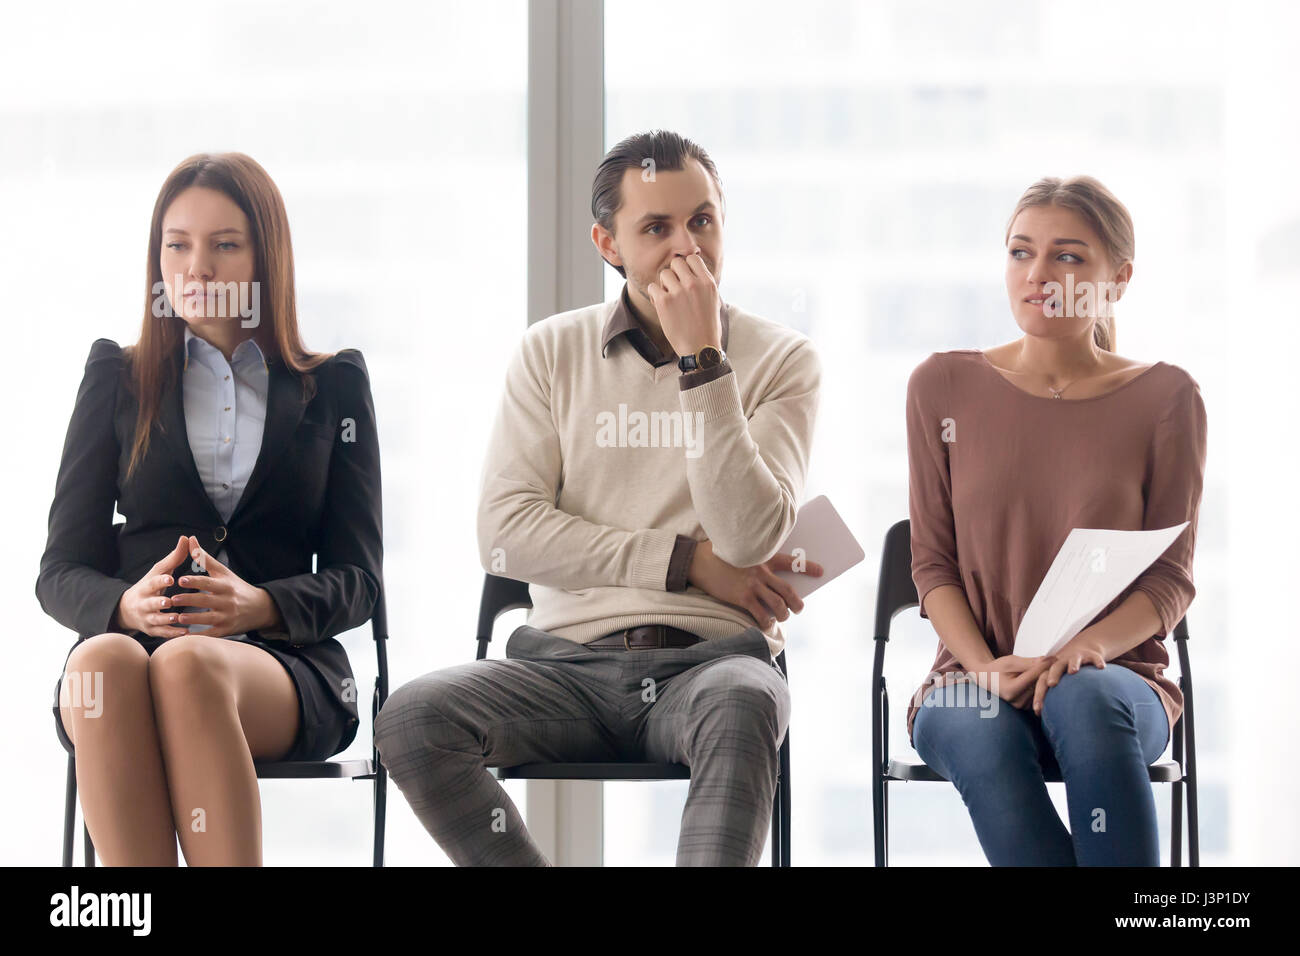 Business people group sitting on chairs waiting, expressing diff - Stock Image